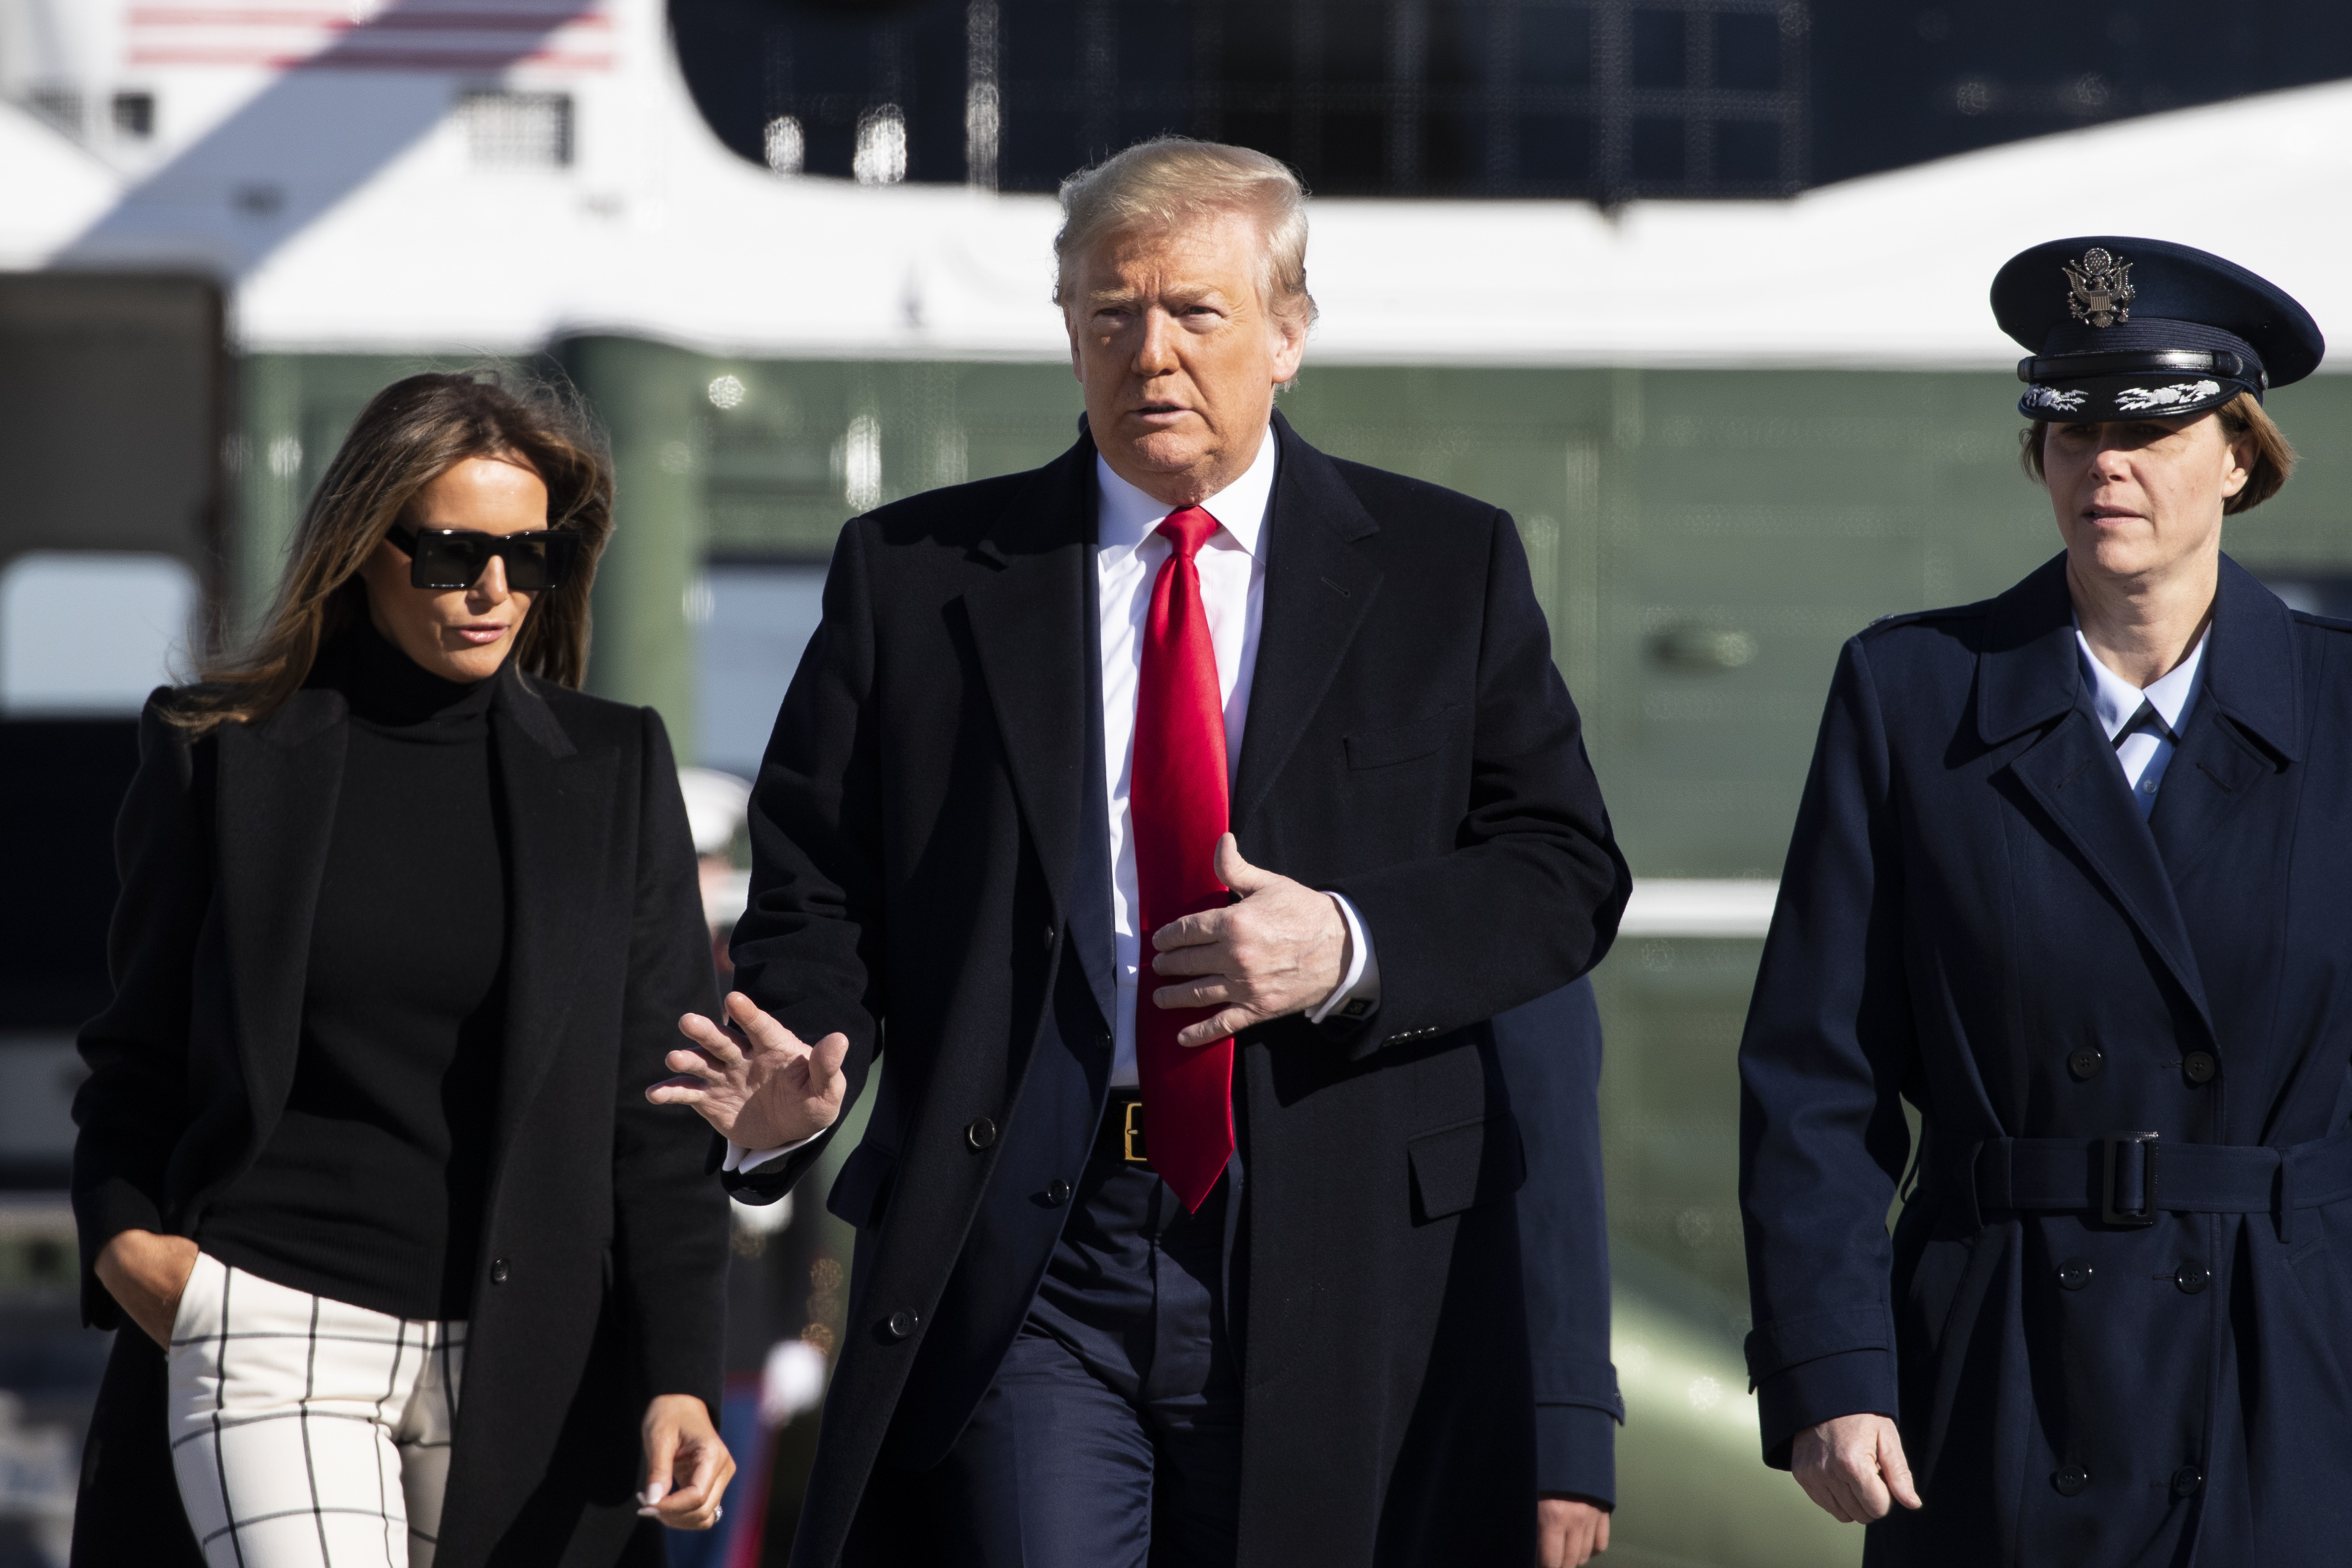 President Donald Trump, with first lady Melania Trump, wave as they walk across the tarmac to board Air Force One during their departure, on Feb. 23, 2020, at Andrews Air Force Base, Md.